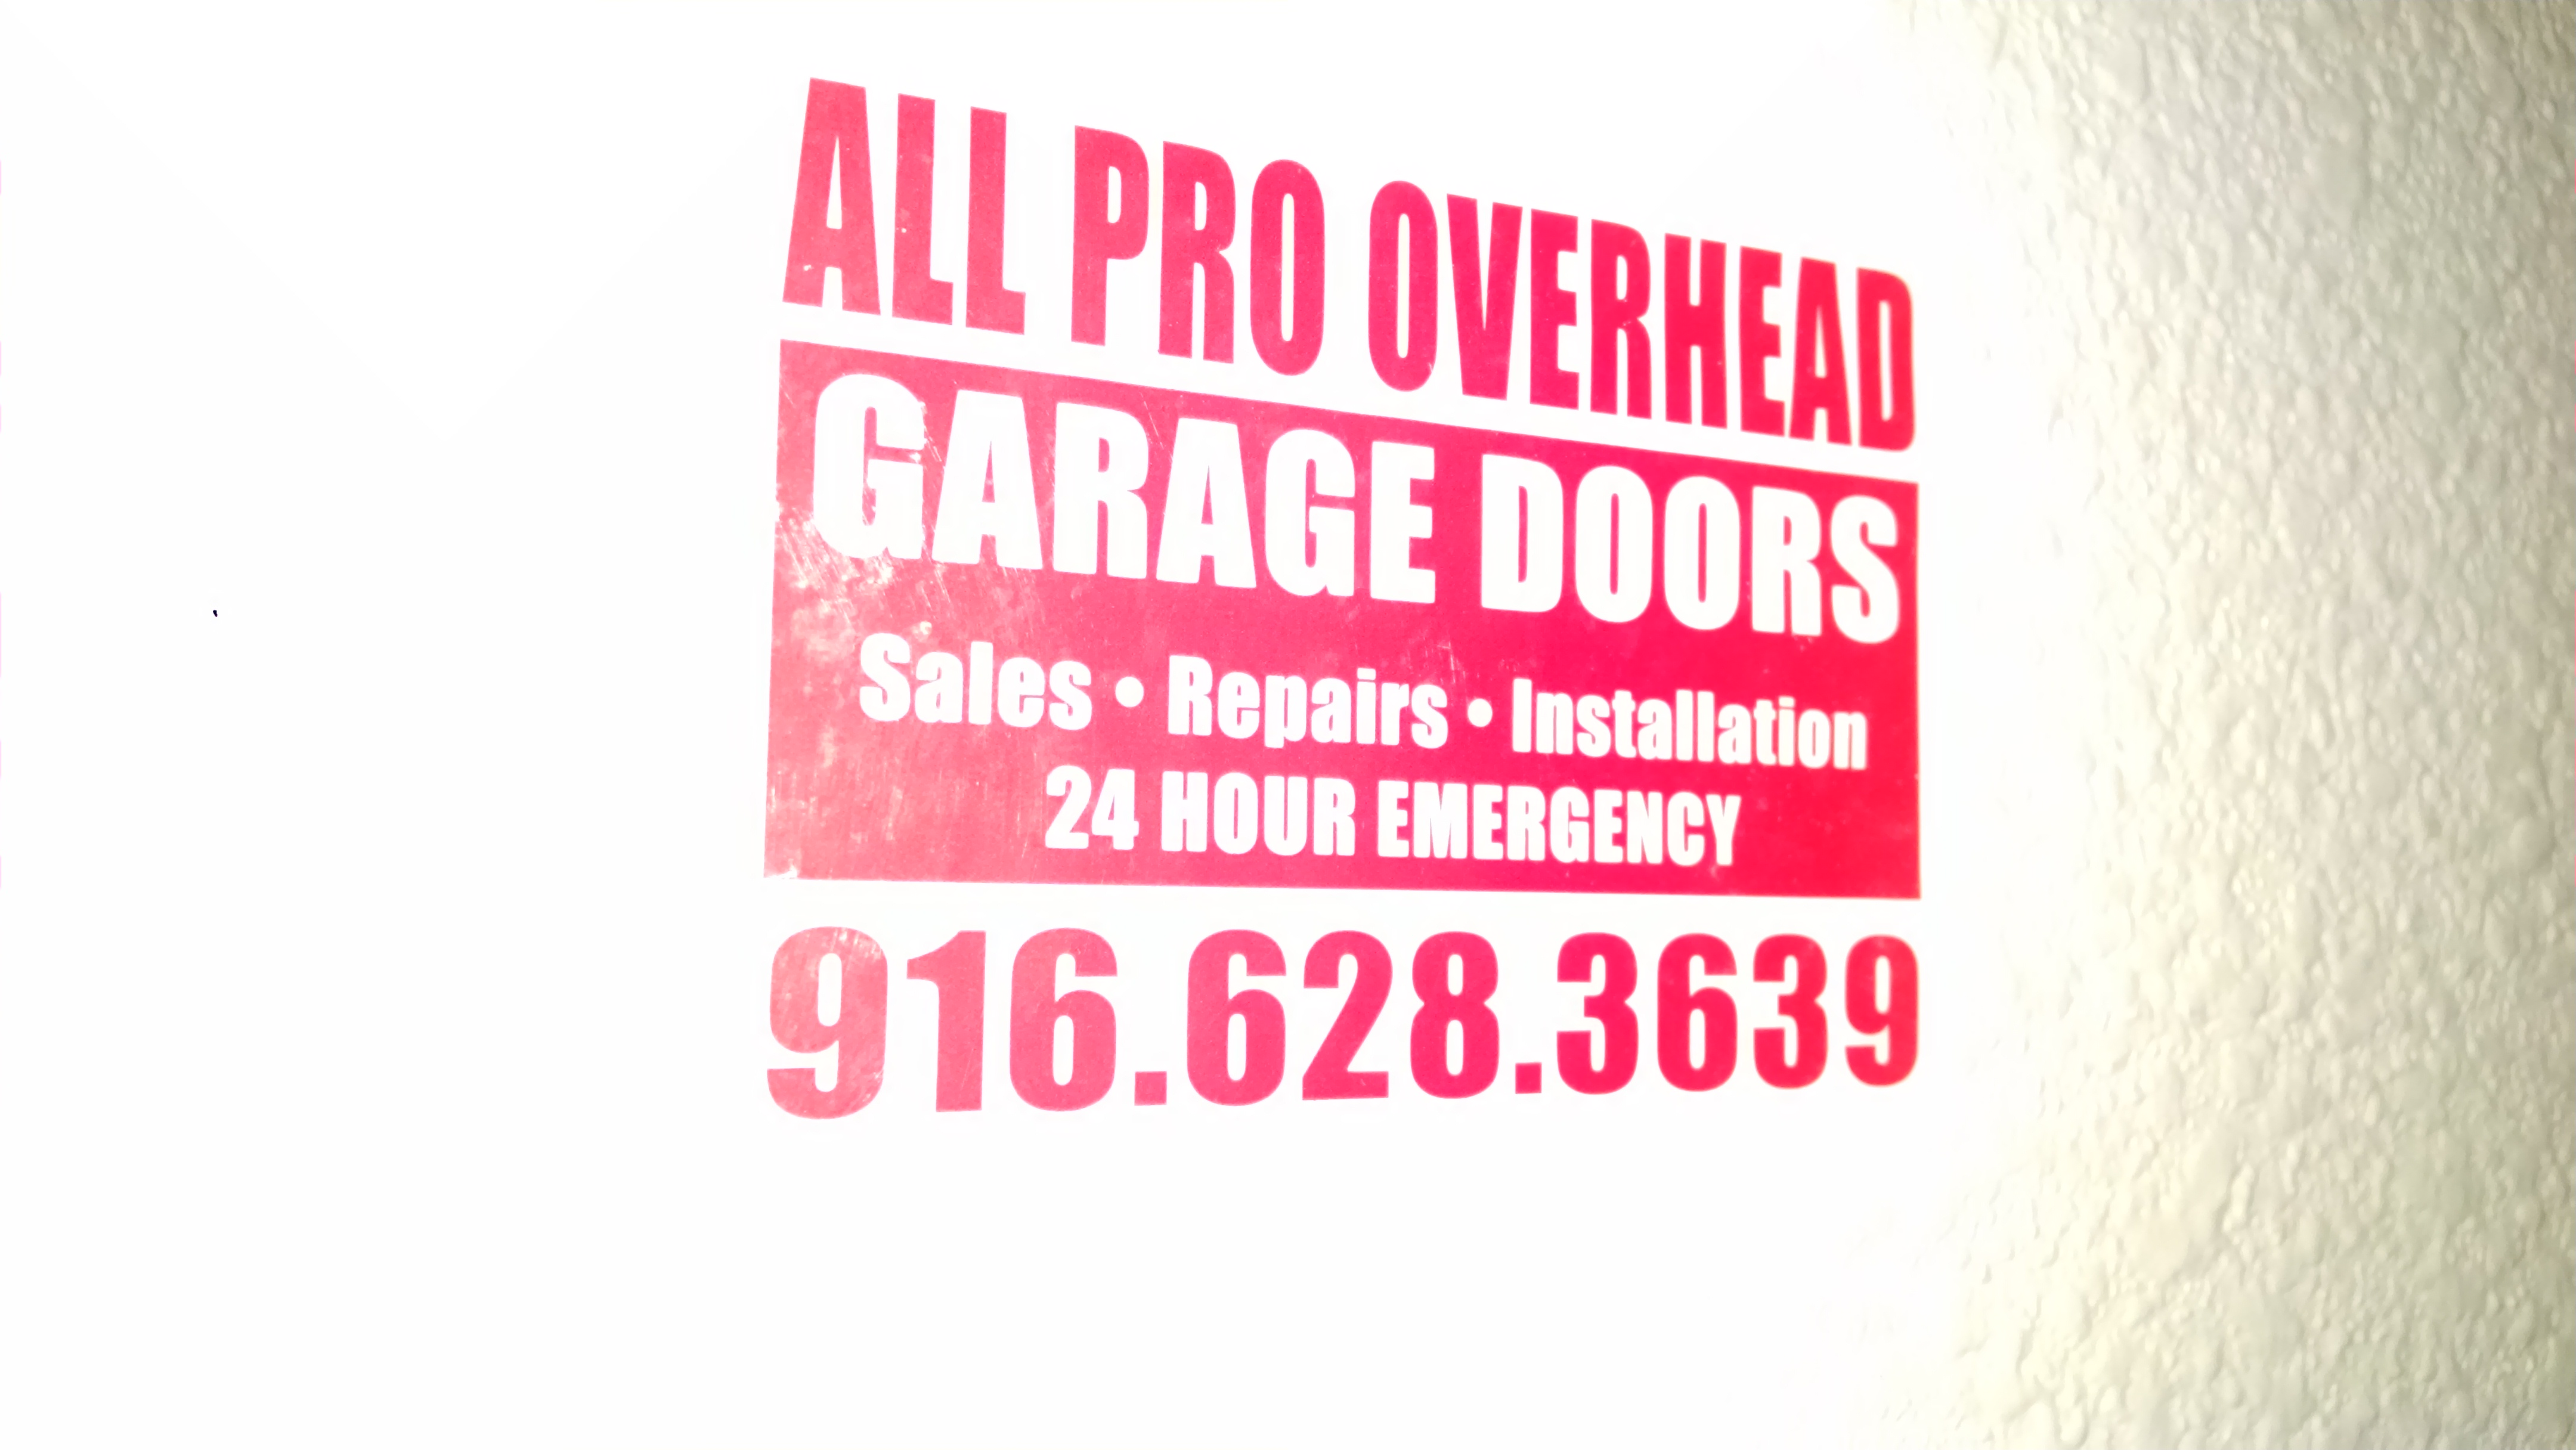 ... Emergency Repairs, Broken Springs Replaced, Expert Technicians,  Repairs, Installations, All Brands, Residential, Garage Doors And Openers  ...